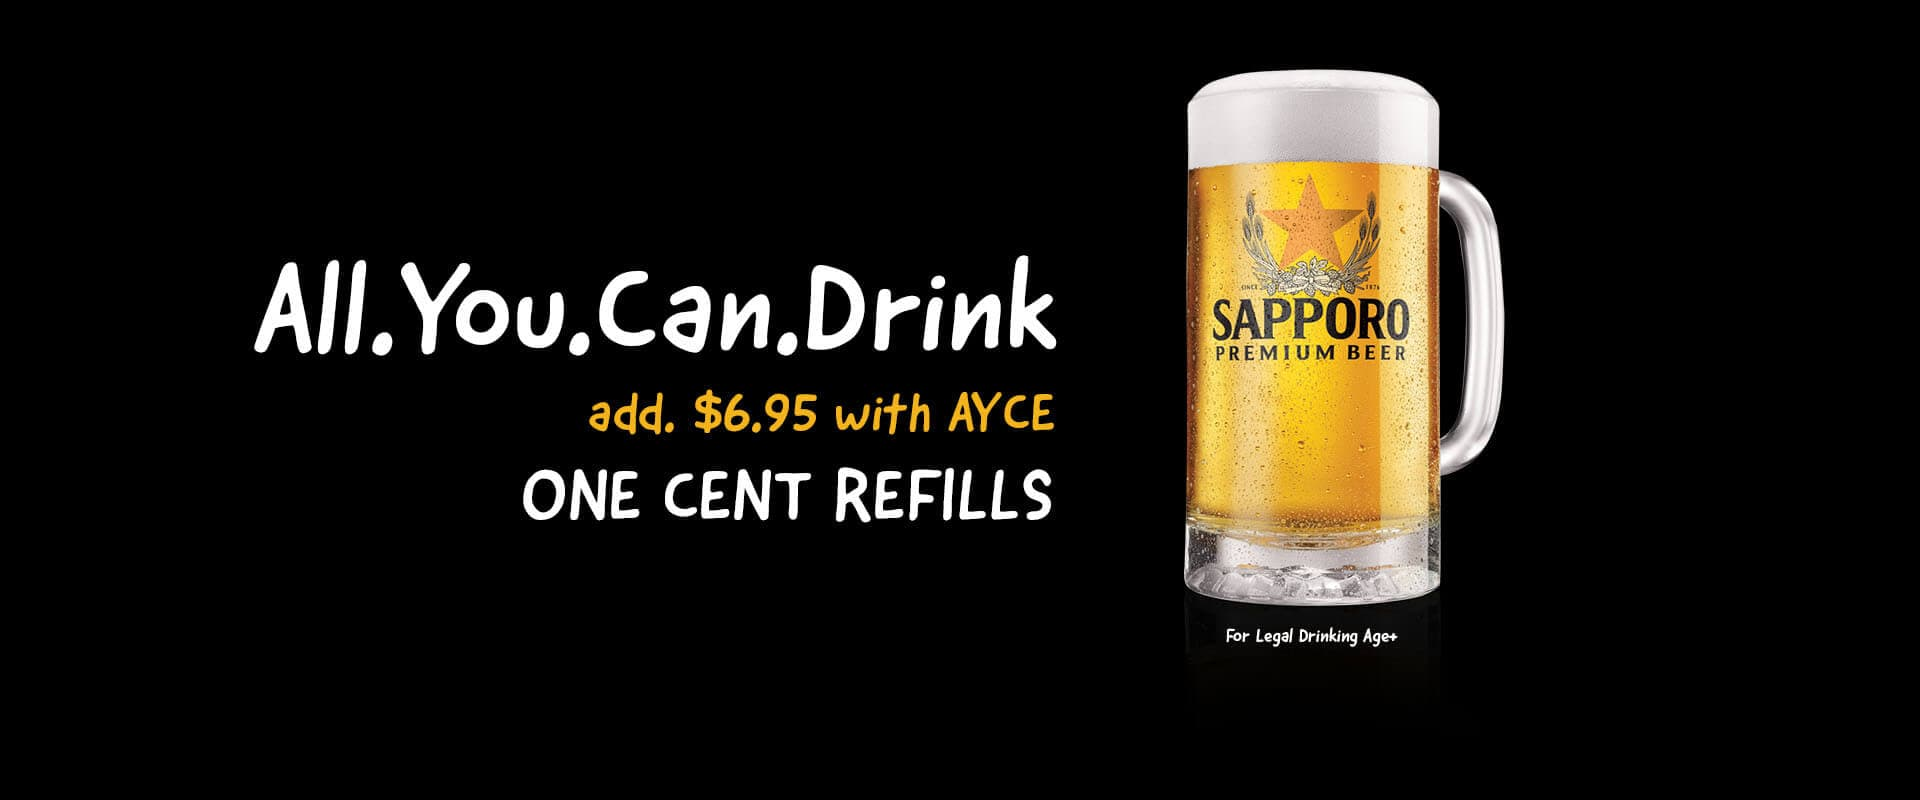 All You Can Drink: Draft Beer